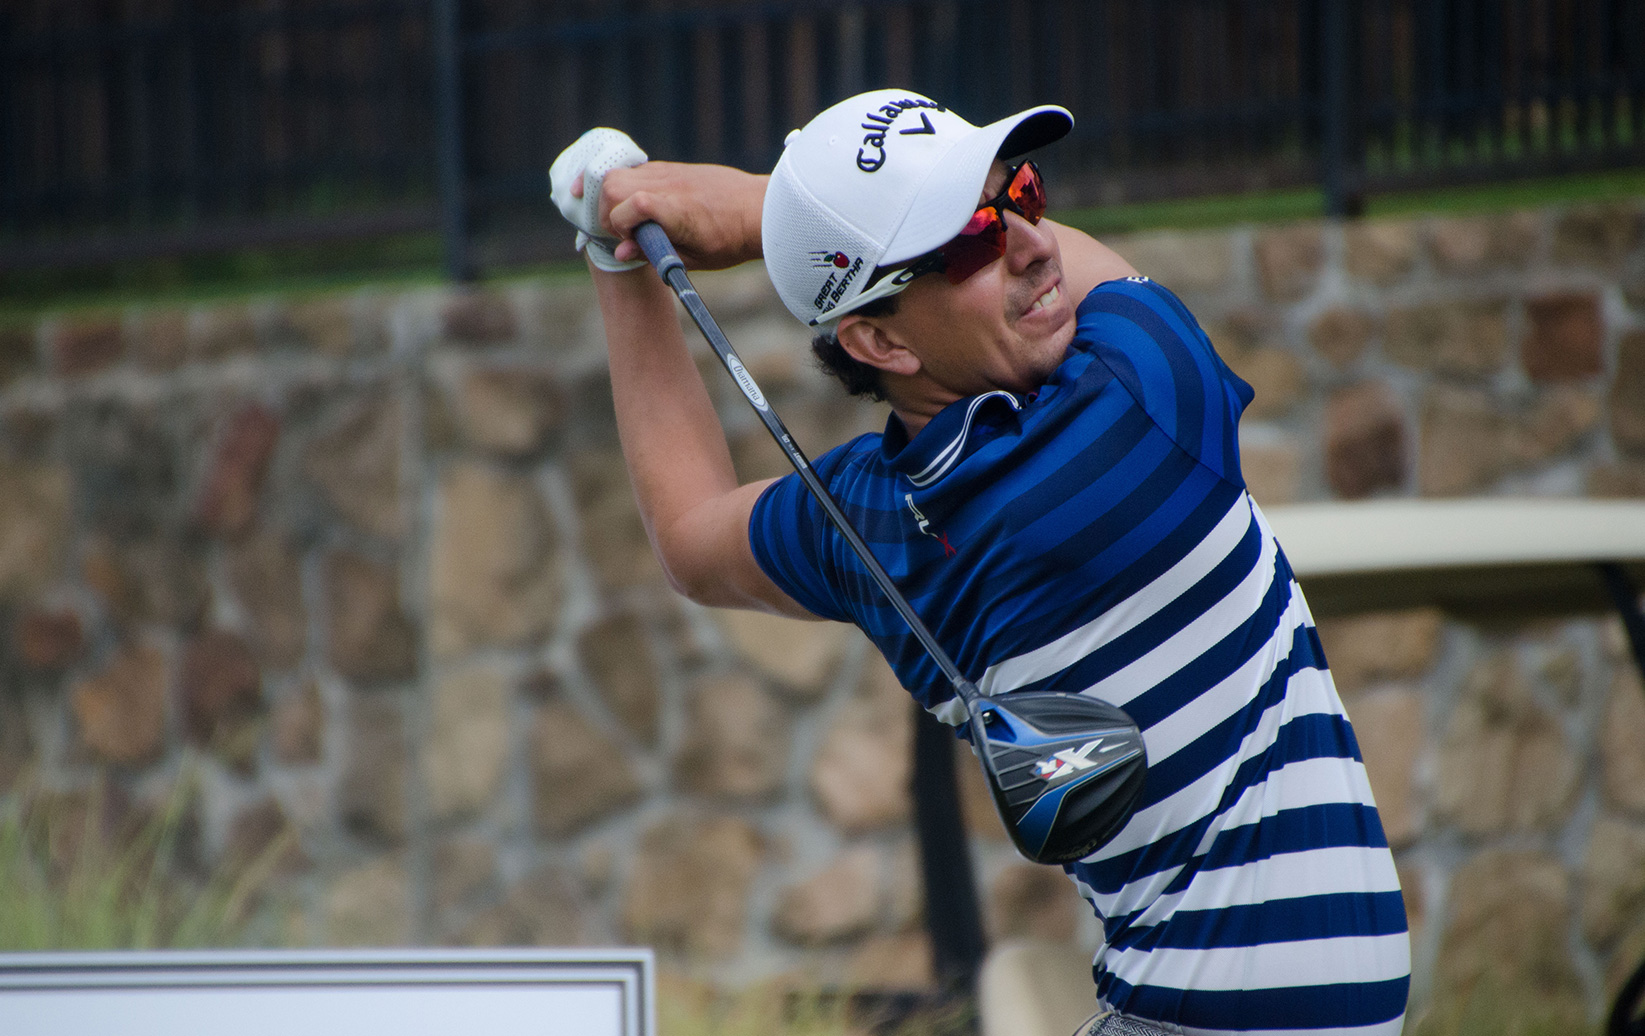 Fernandez Remains on Top After Round Three of the 46th Veritex Bank Texas State Open